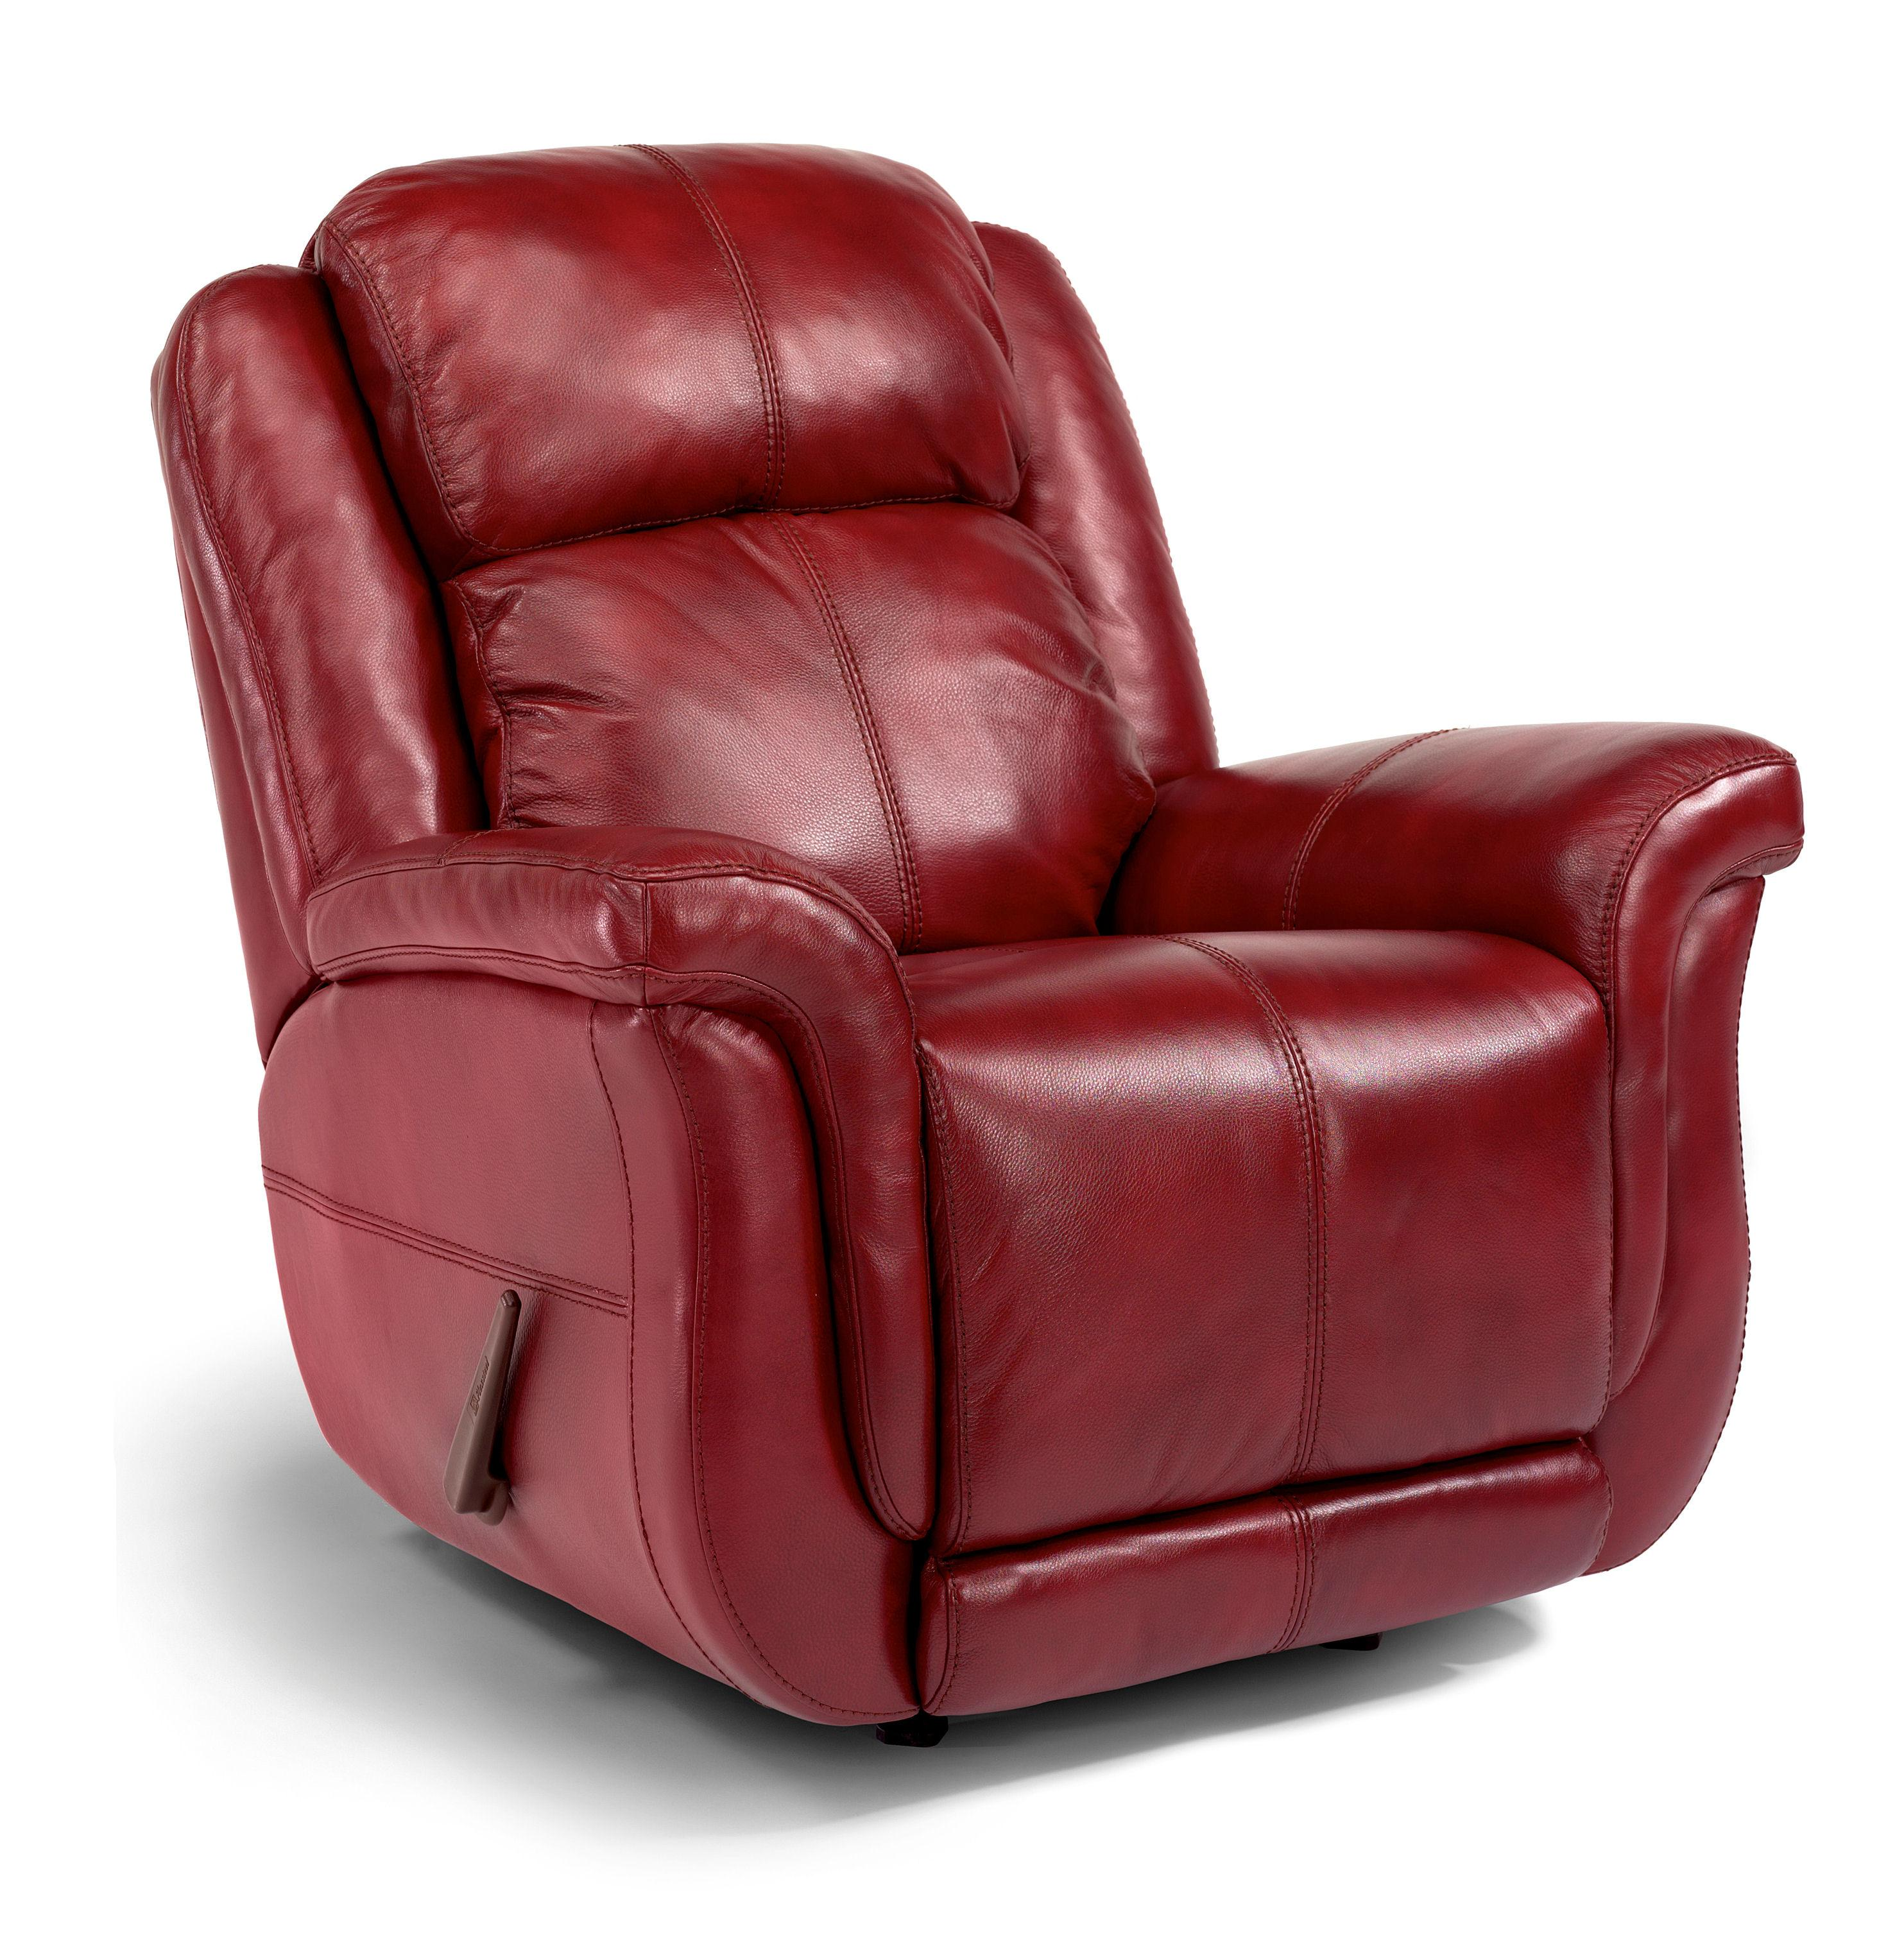 Flexsteel Latitudes-Brookings Rocker Recliner - Item Number: 1250-510L